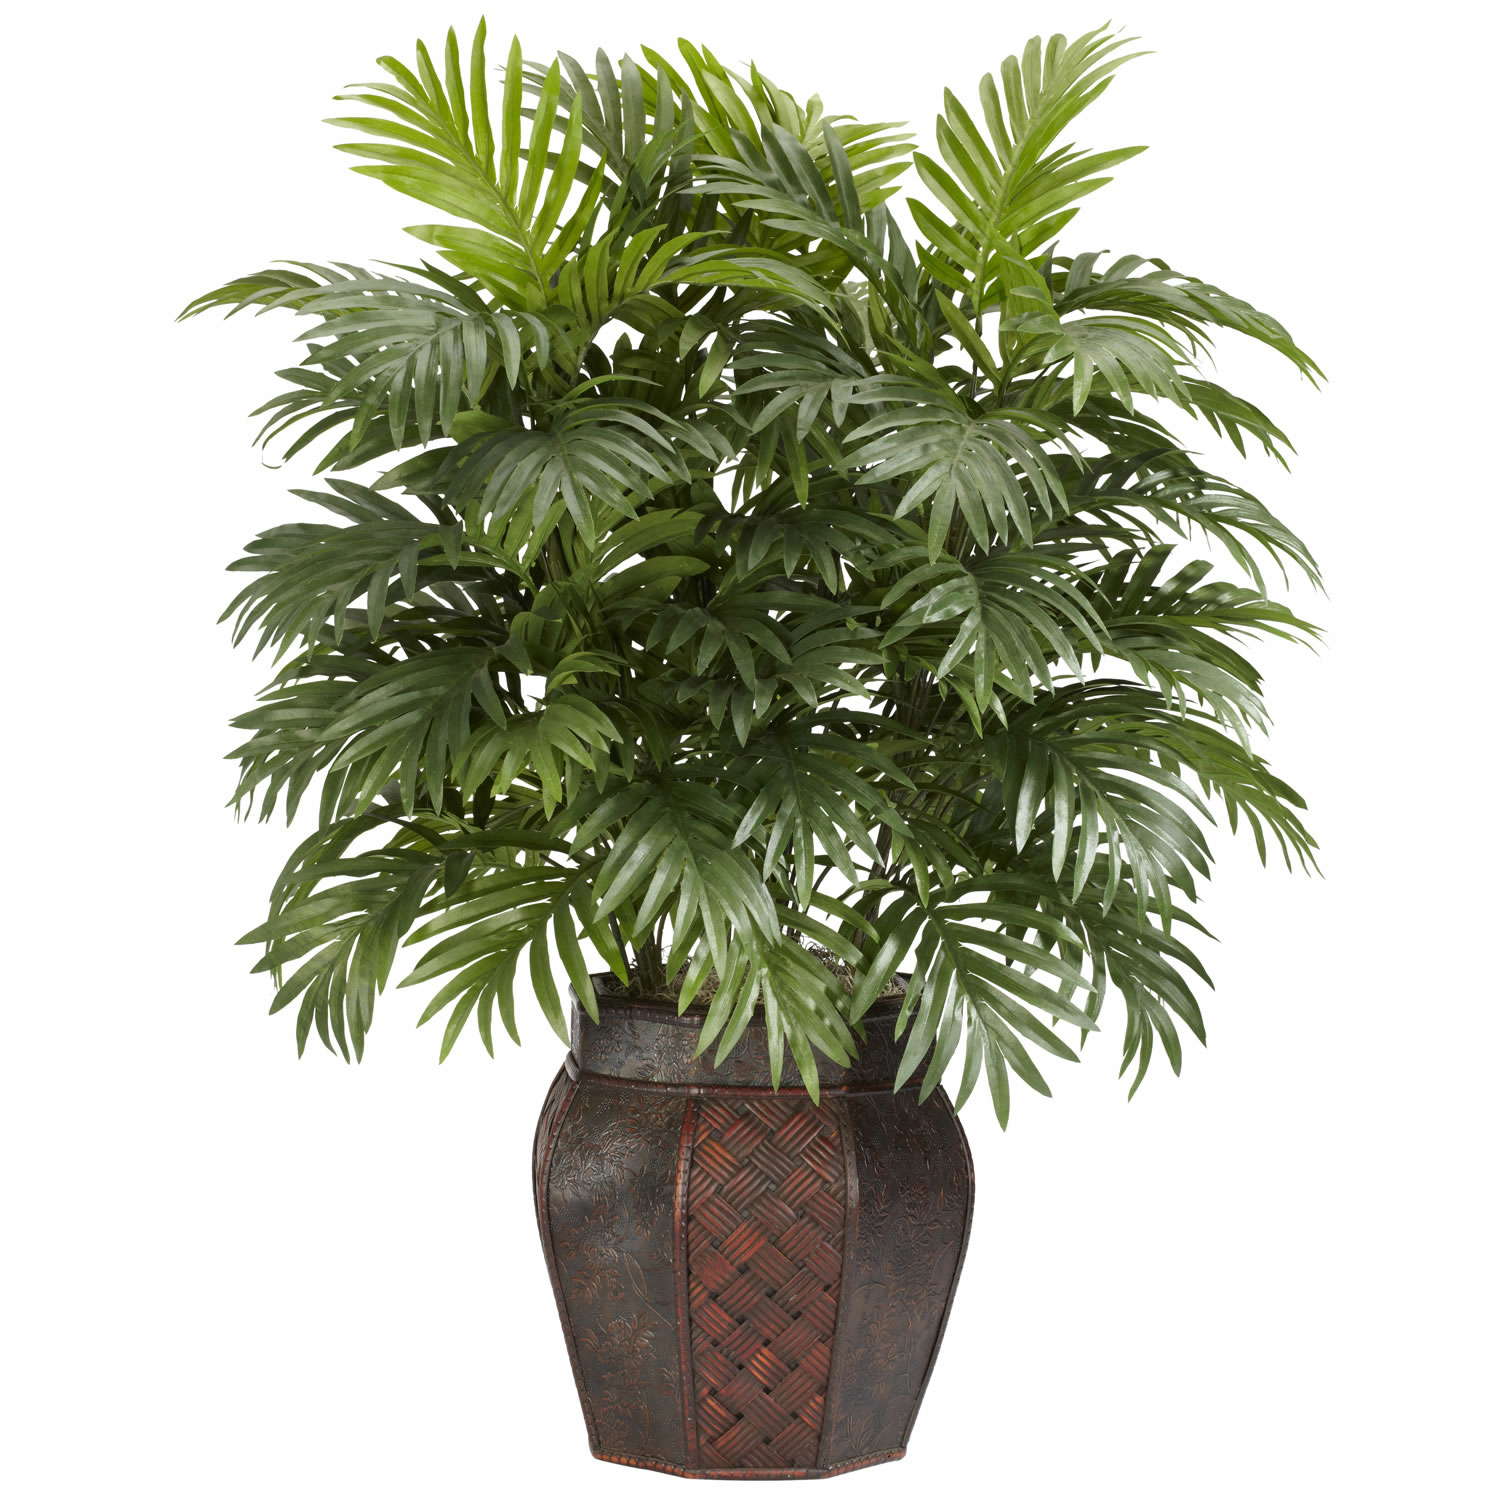 38 inch Areca Palm in Vase 6651